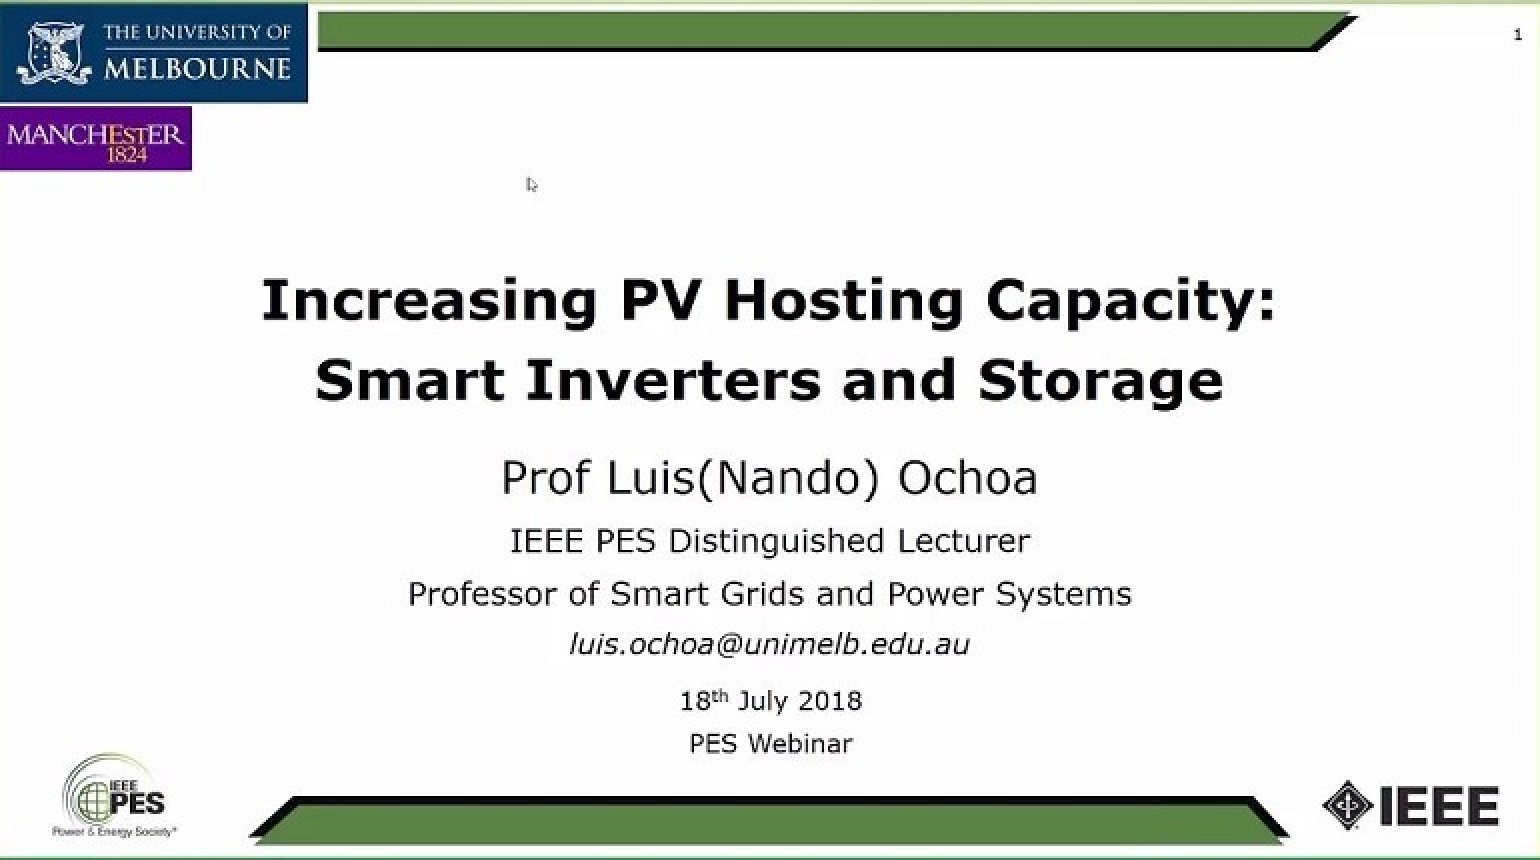 Increasing the PV Hosting Capacity of Distribution Networks: The role of Smart Inverters and Storage